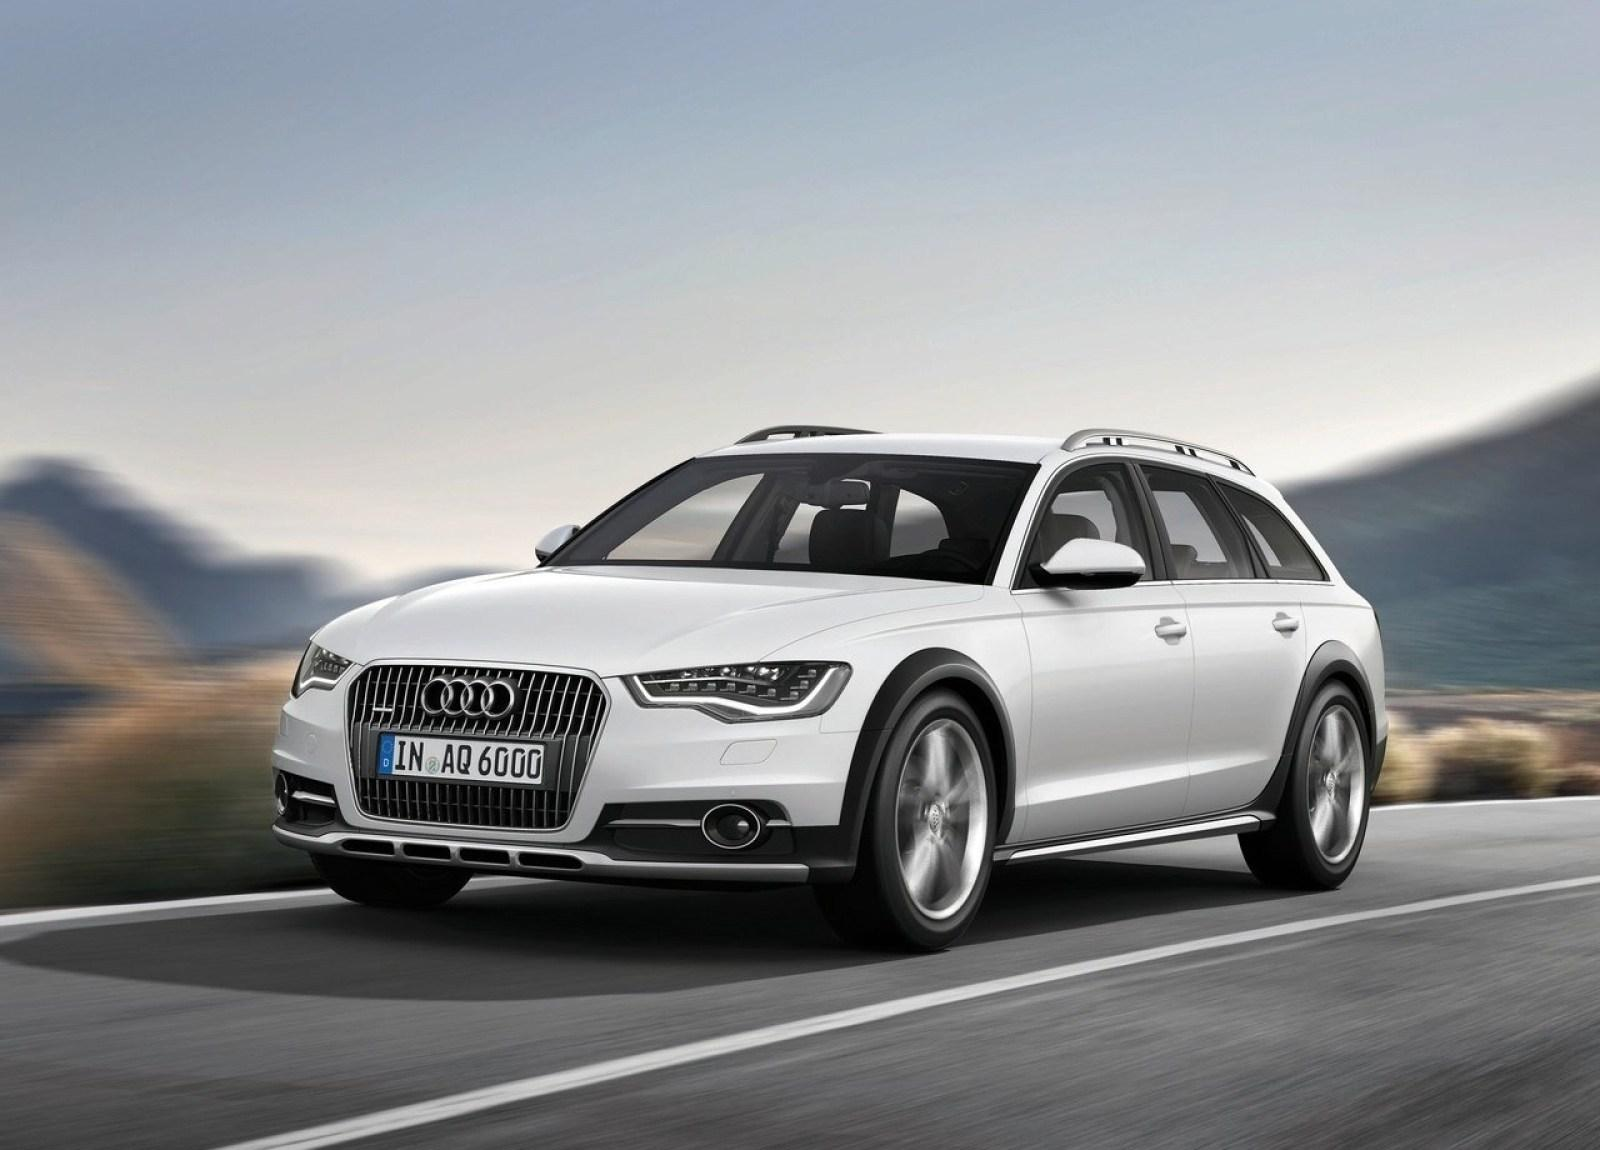 Audi A6 Allroad Hd Wallpapers The World Of 2013 Wallpapers